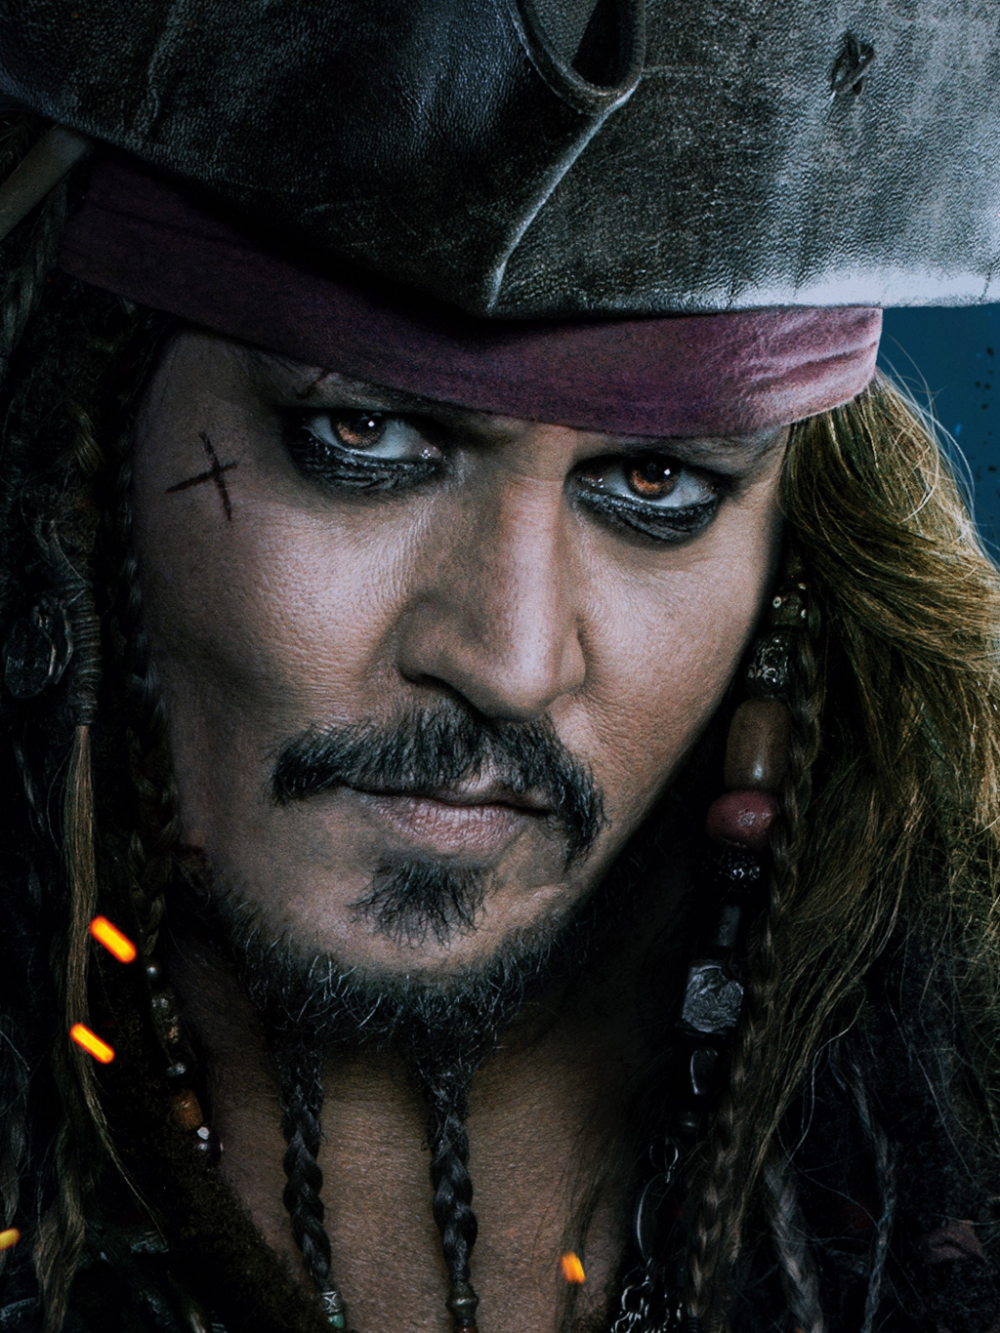 2048x2732 Pirates Of The Caribbean Jack Sparrow Shark Skull Ghost Ship Wallpaper Background Full H Jack Sparrow Tattoos Jack Sparrow Wallpaper Jack Sparrow